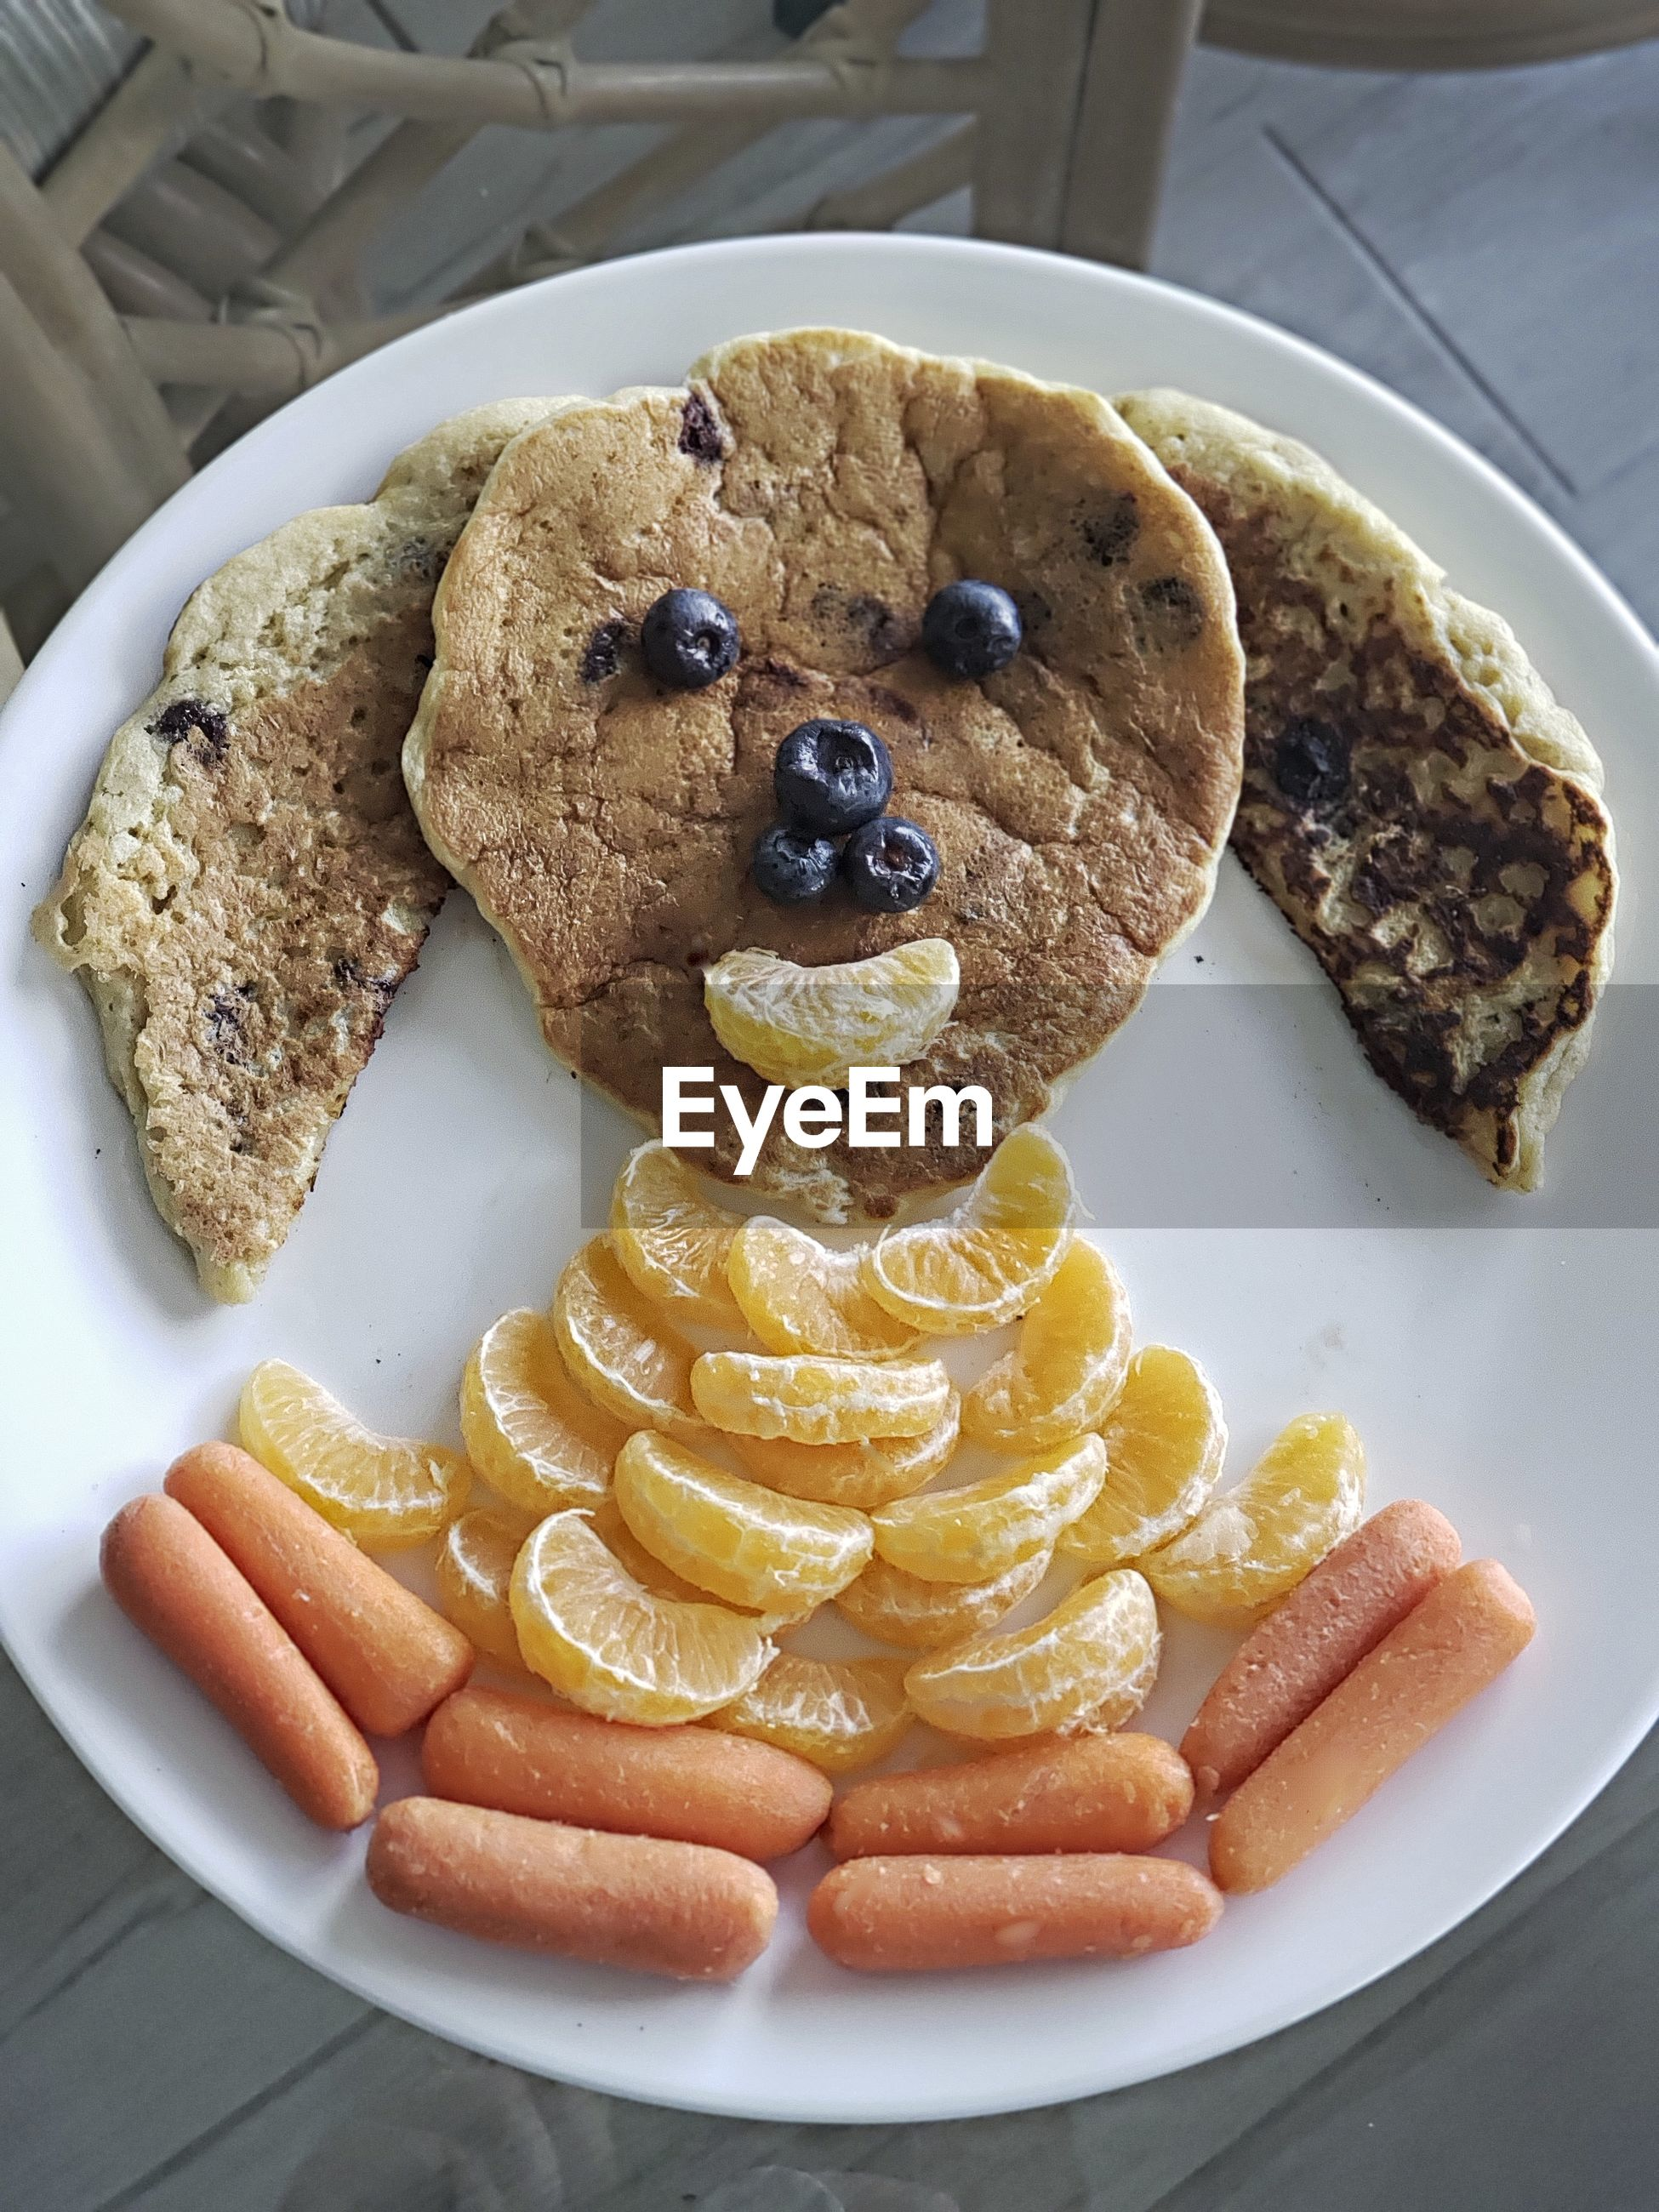 A healthy puppy pancake meal made of whole wheat pancakes, blueberries, orange slices and carrots,